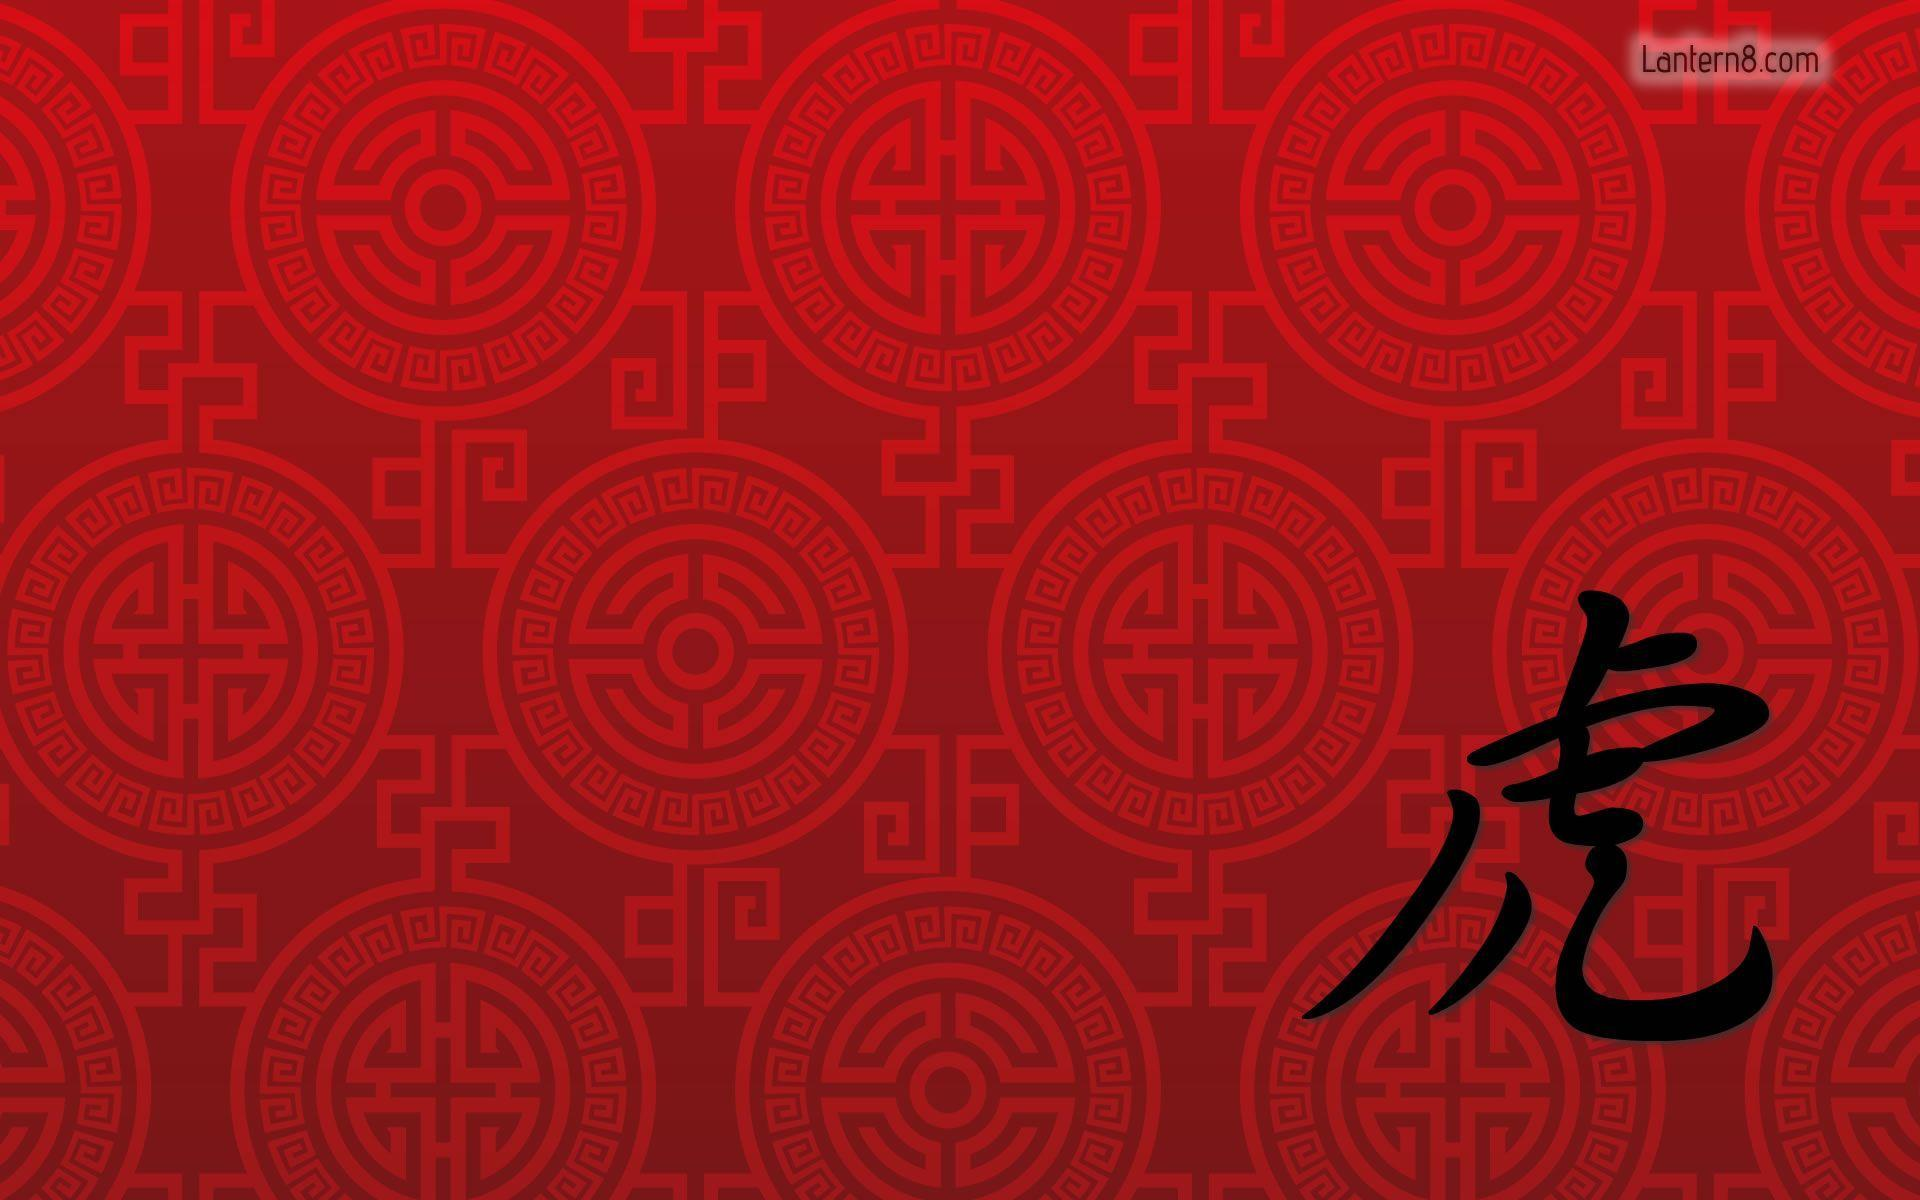 chinese hd background desktop - photo #13